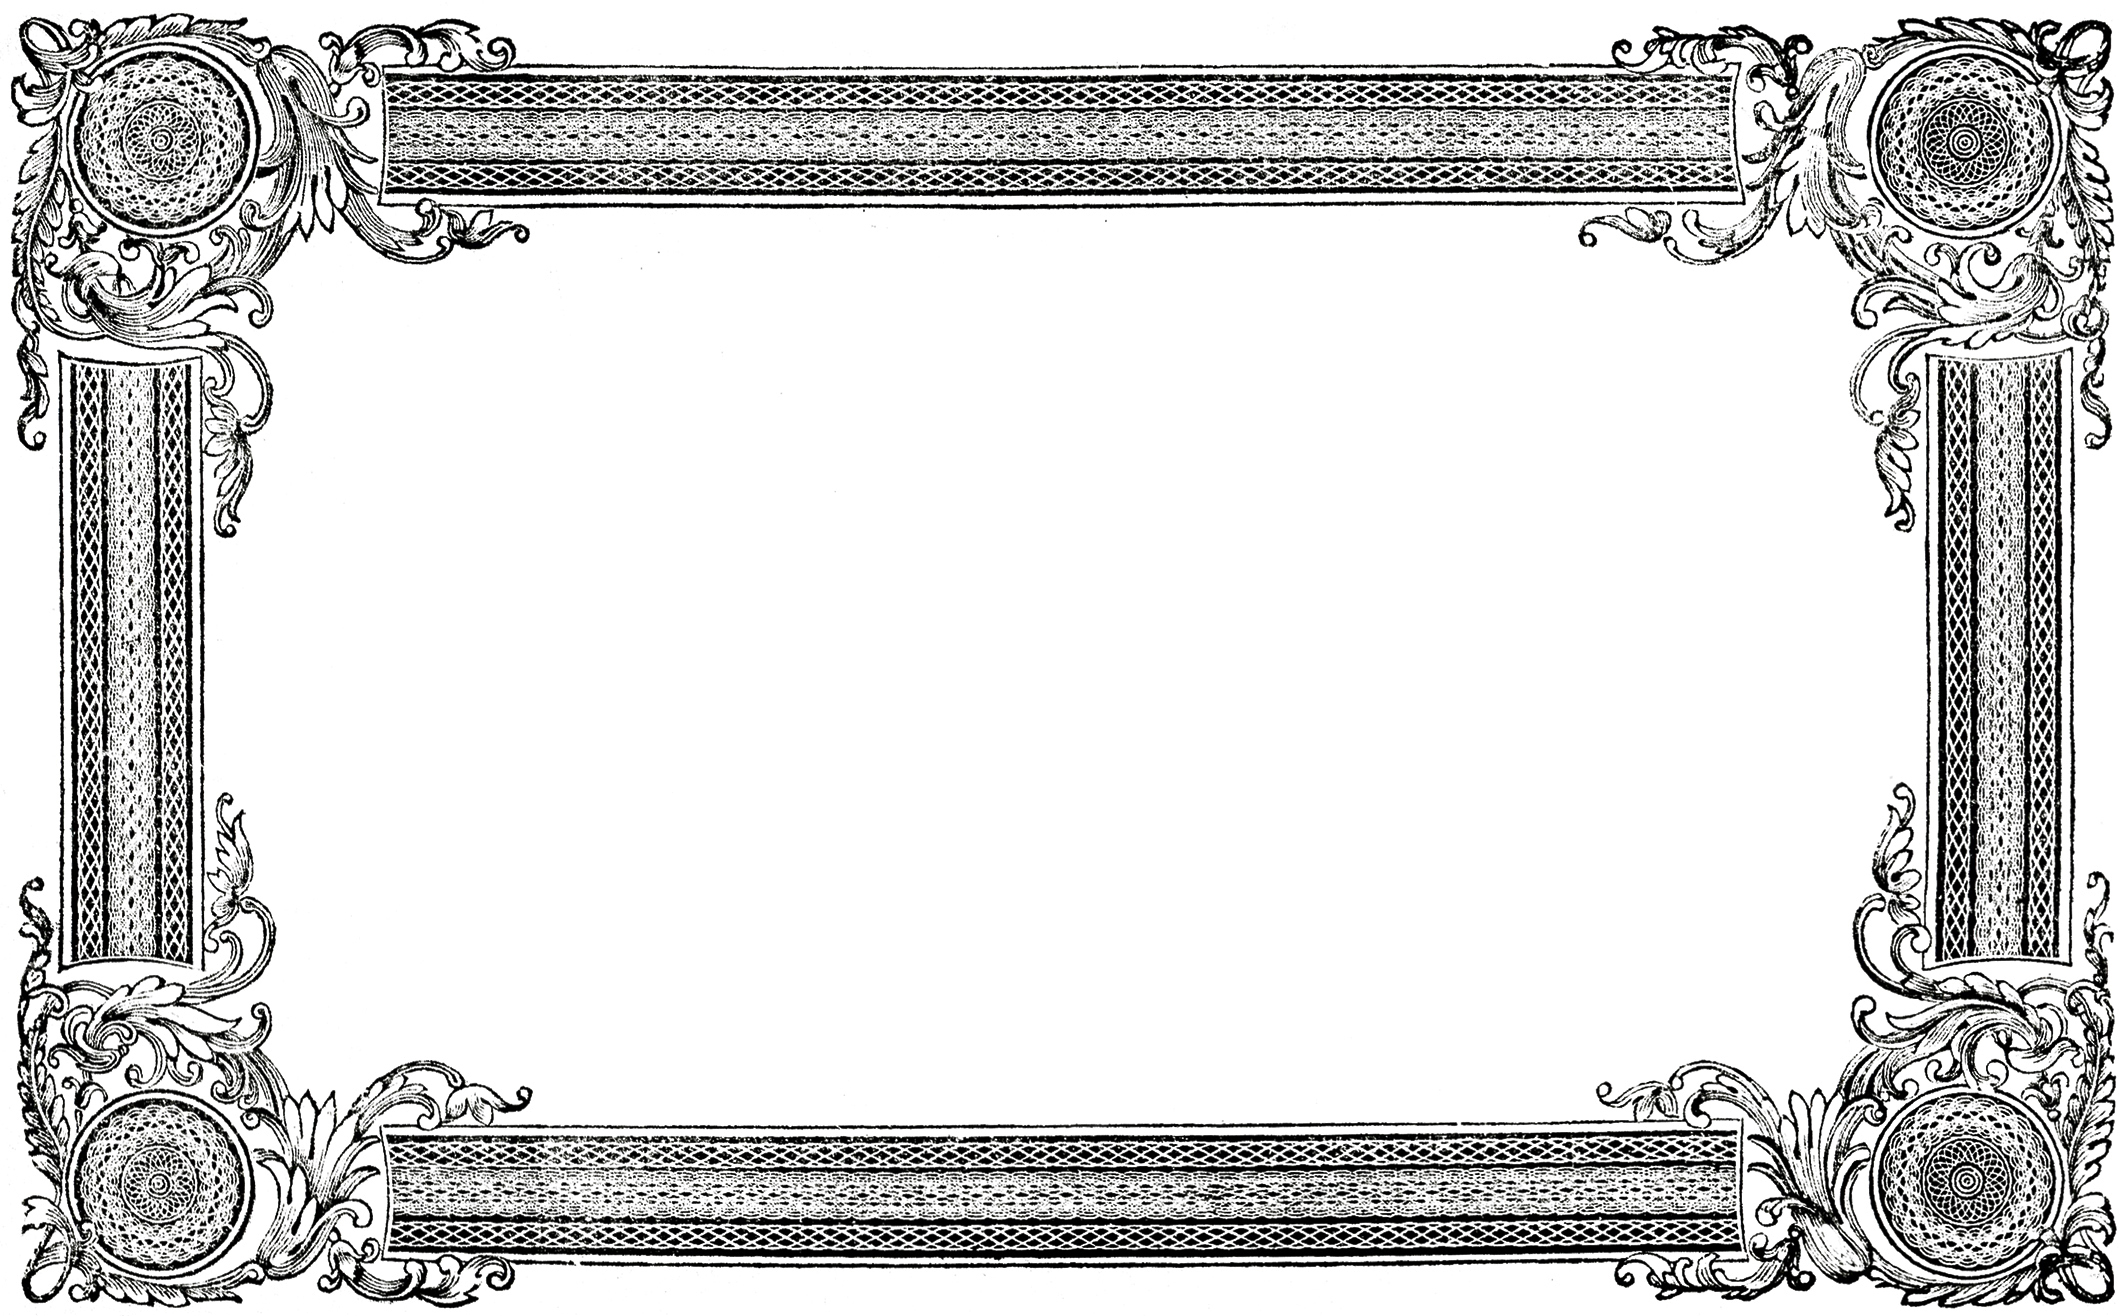 Free Frame Clip Art Images - The Graphics Fairy for Ornate Picture Frame Clip Art  183qdu